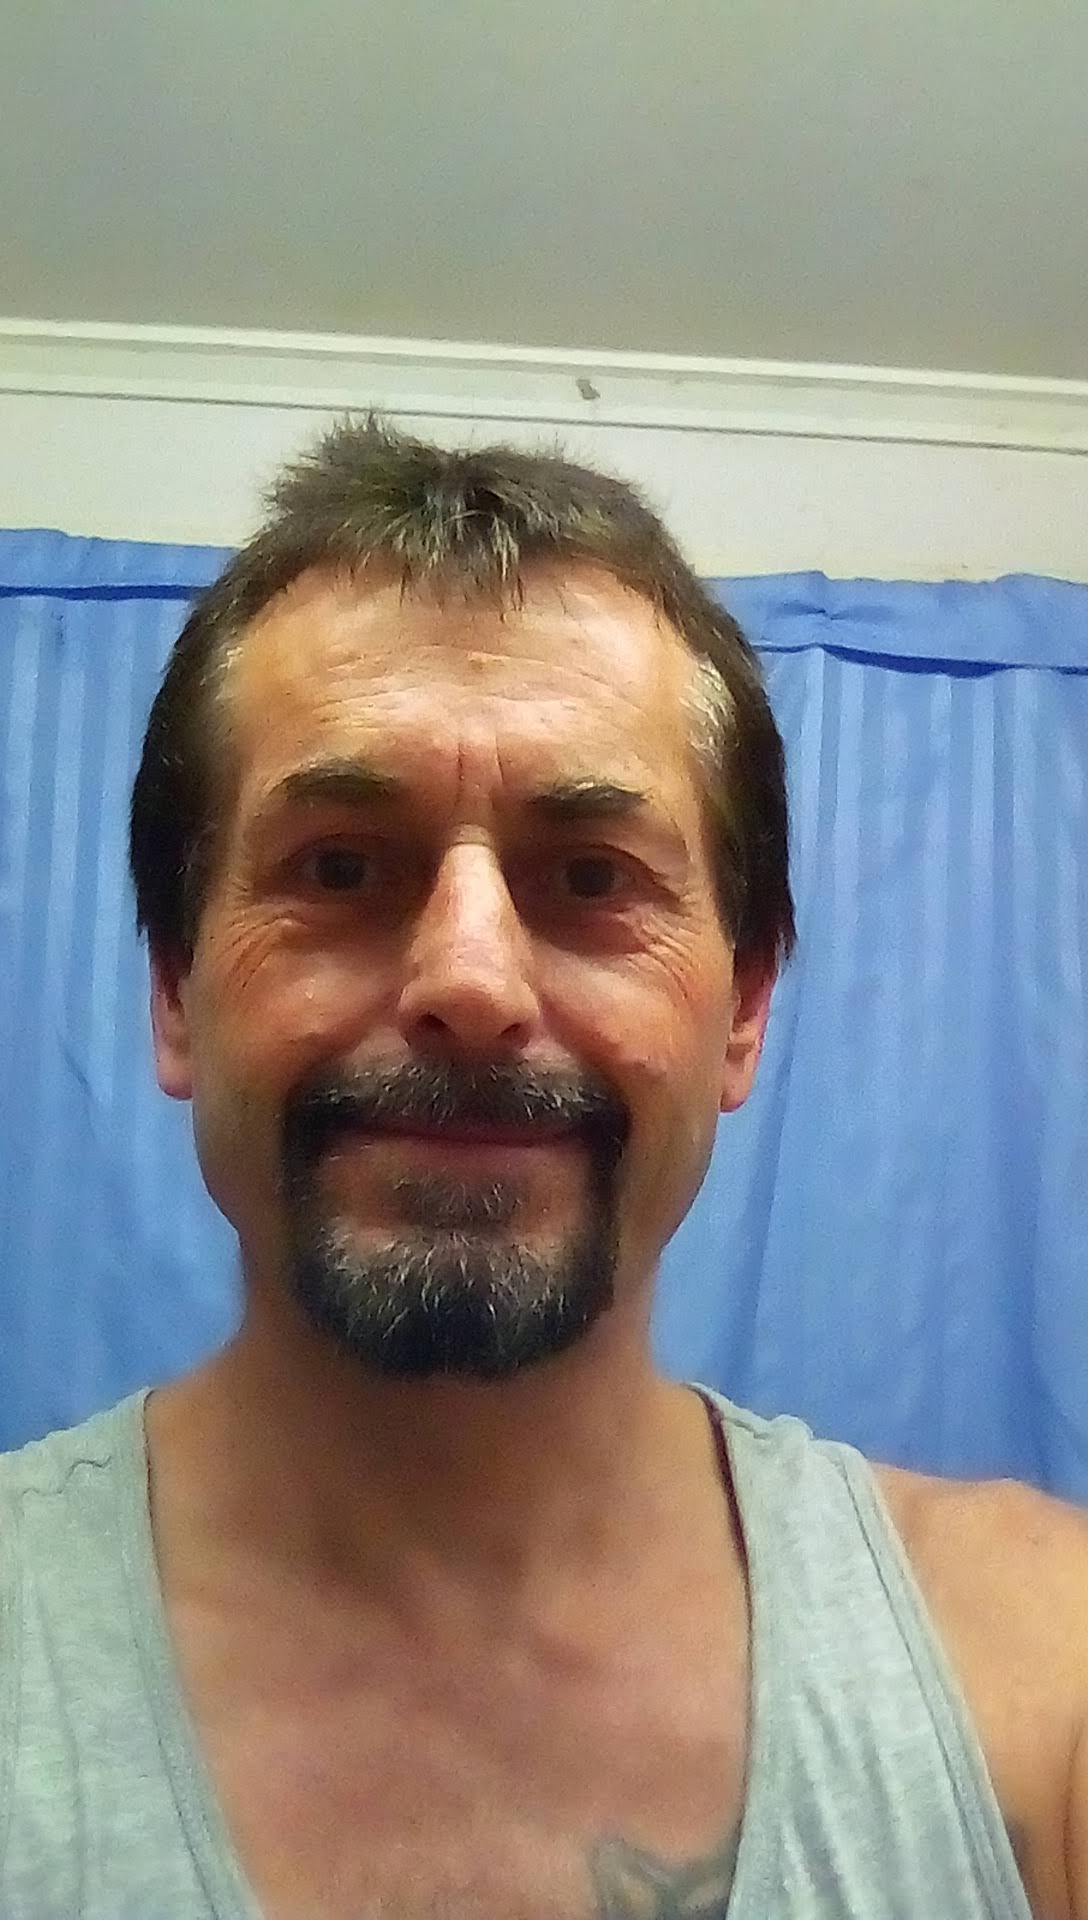 Anthony69 from Queensland,Australia